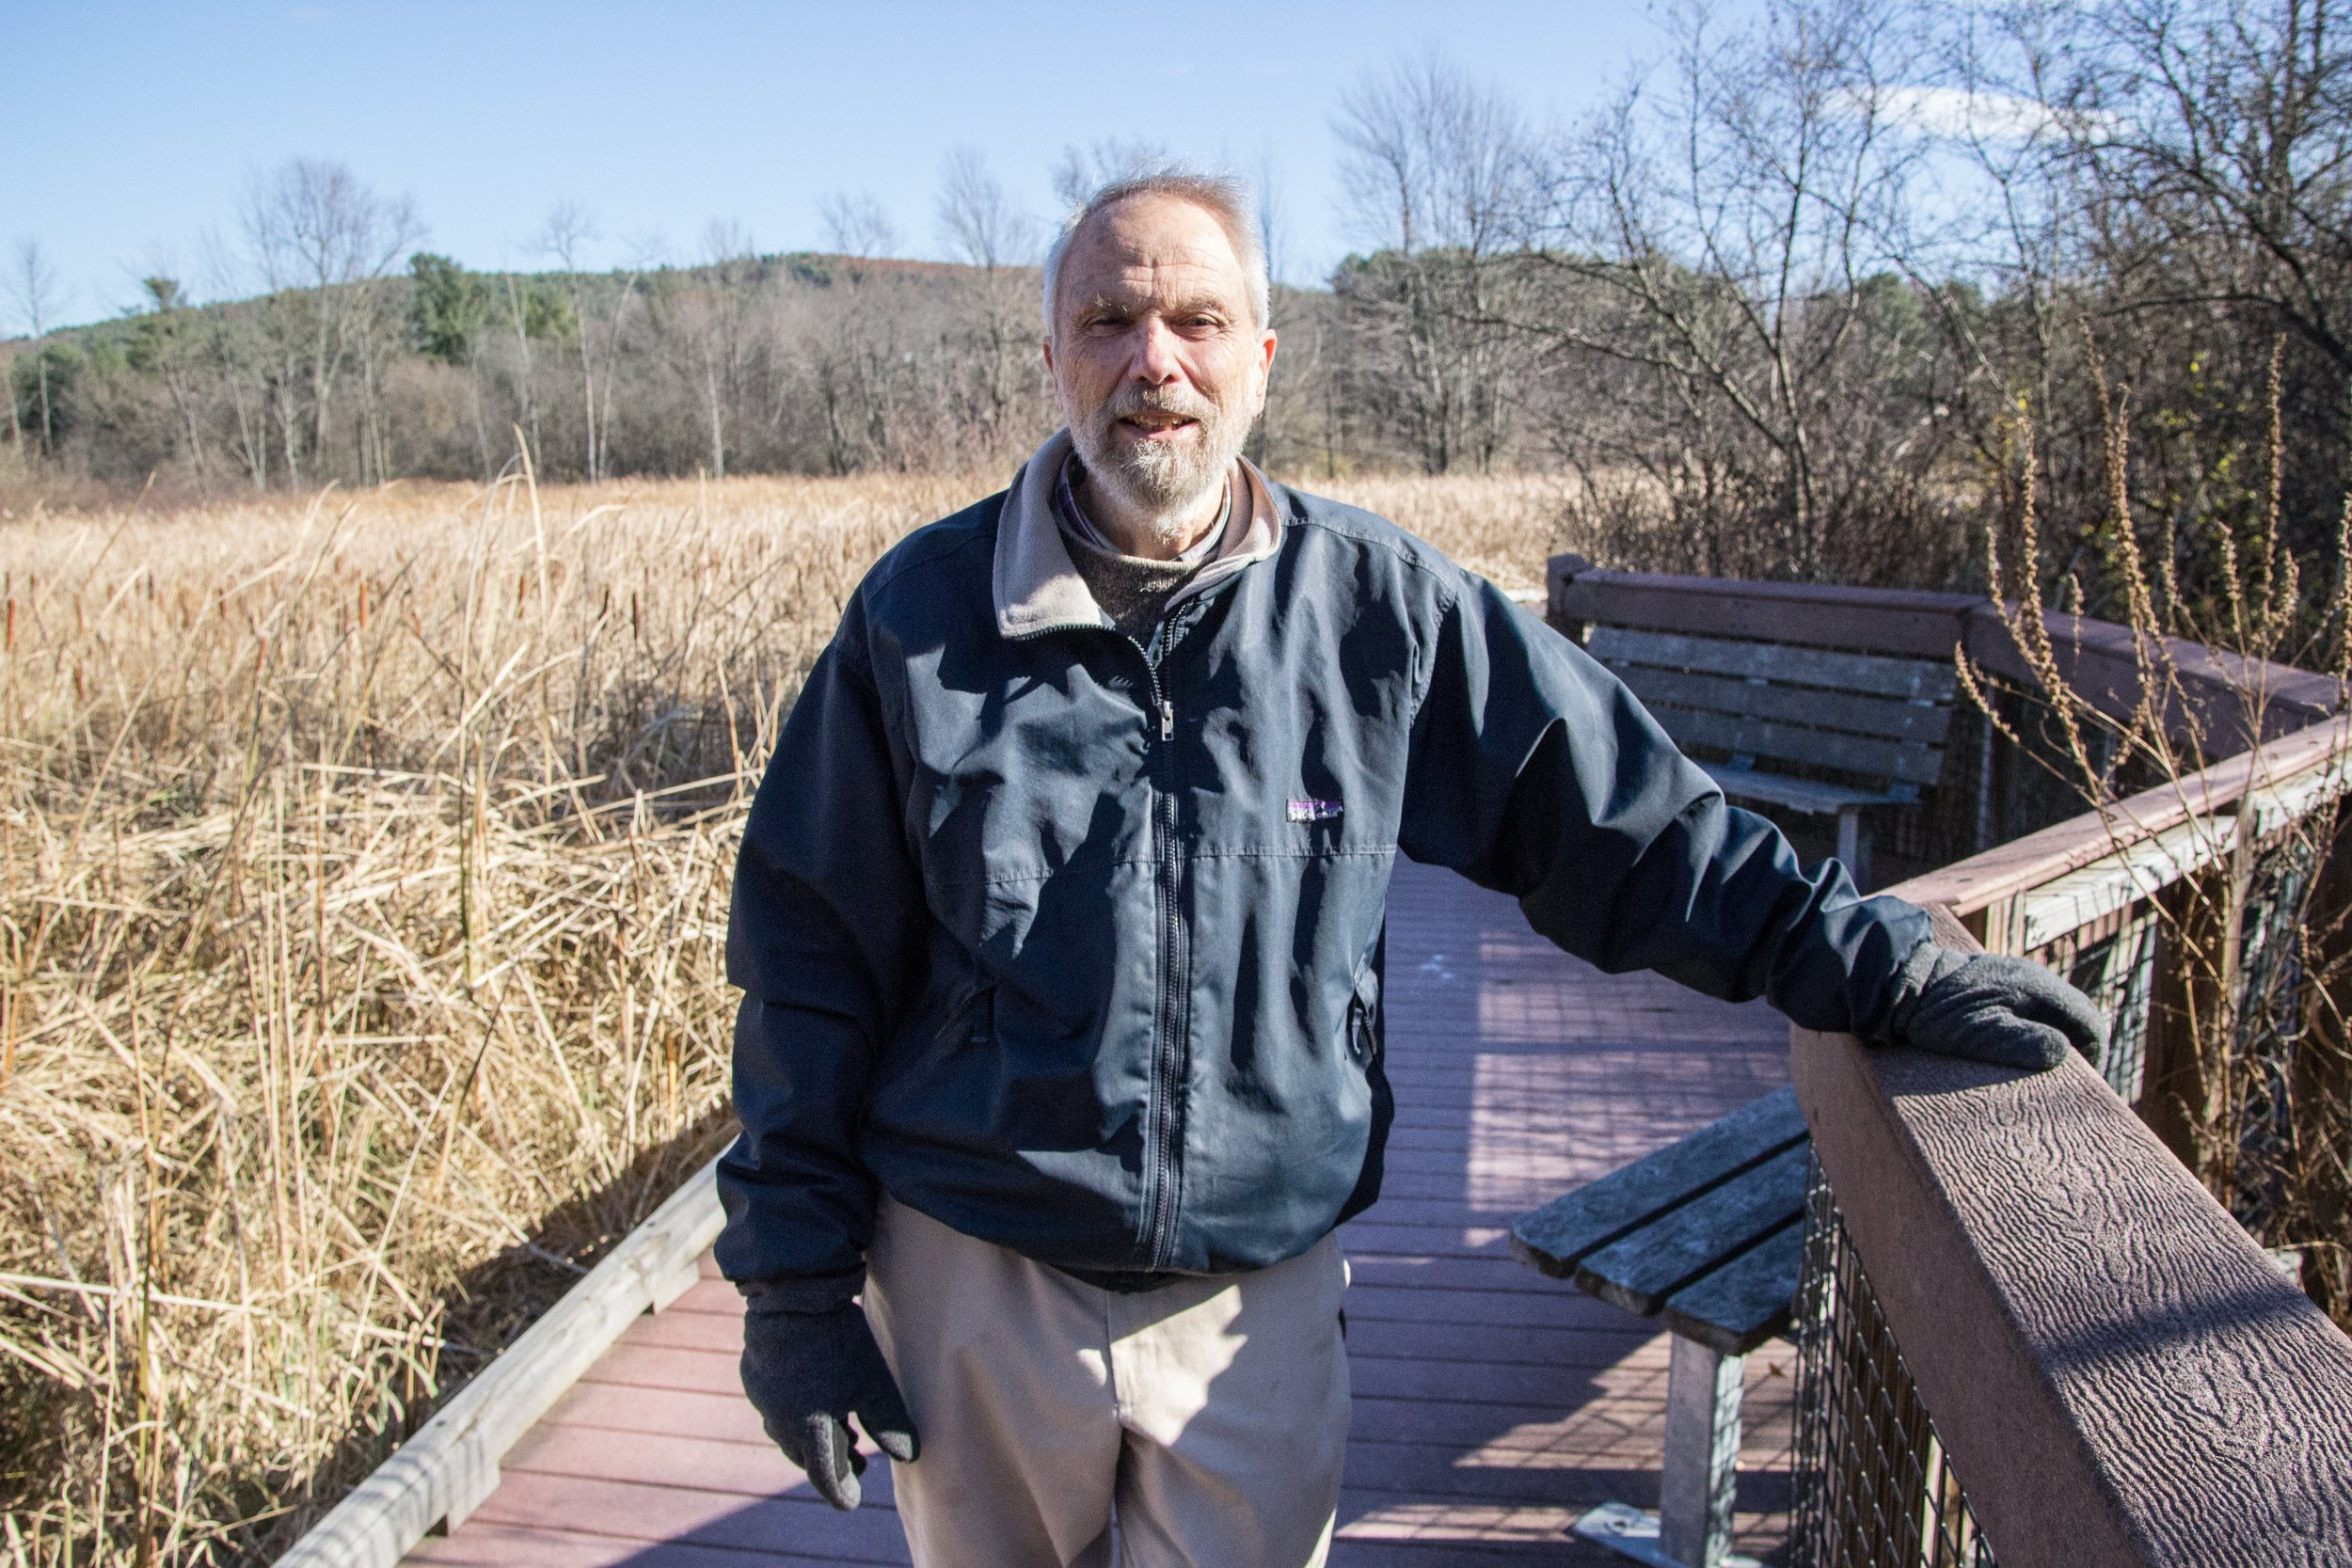 Warren King on the boardwalk at Otter View Park in Middlebury, VT. Photo by Dorothy Weicker.